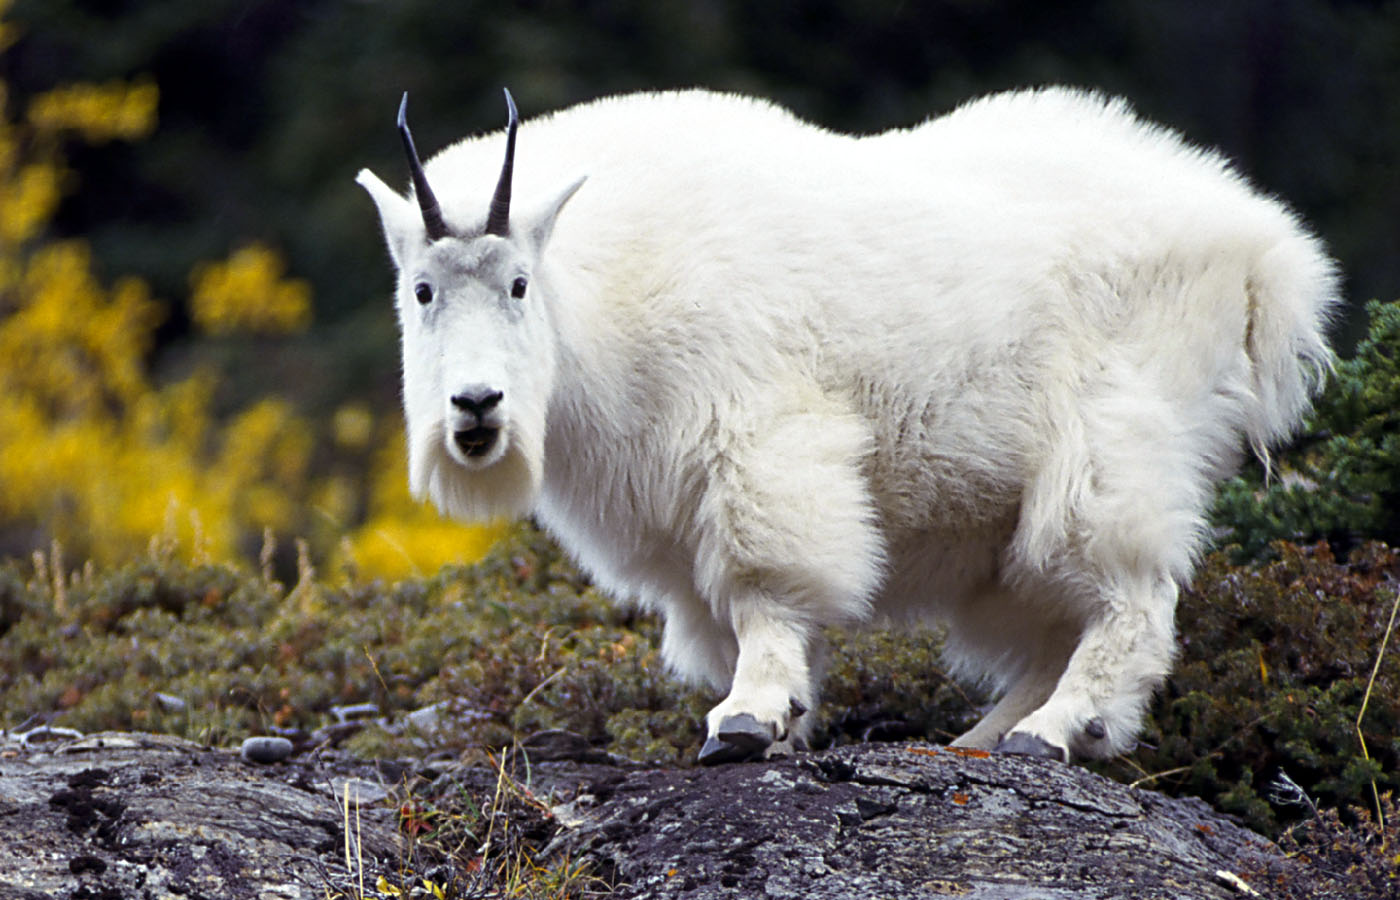 Goat-Wallpaper-On-Desktop